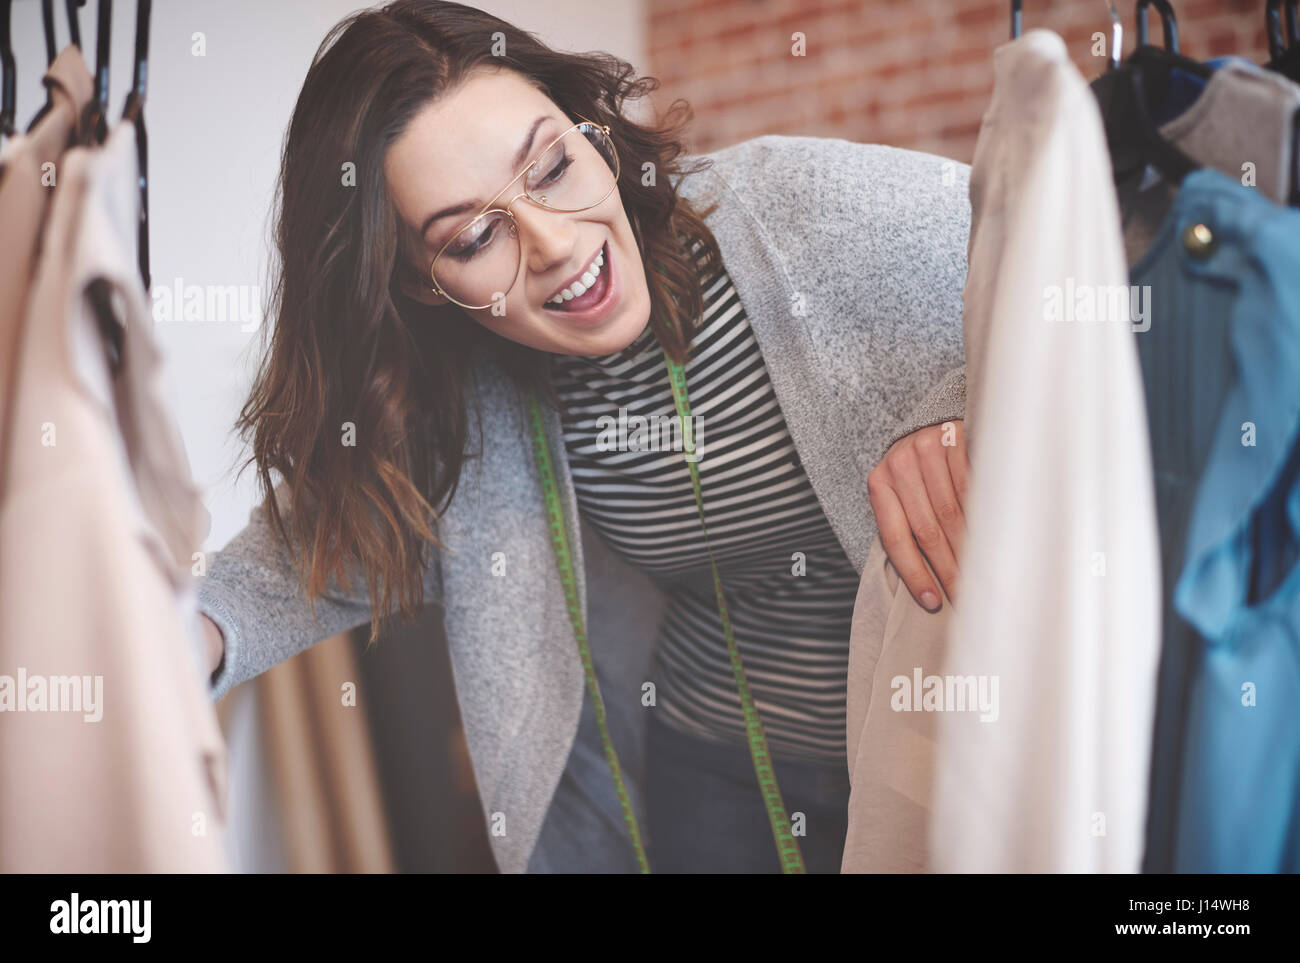 Young seamstress looking through on hangers - Stock Image